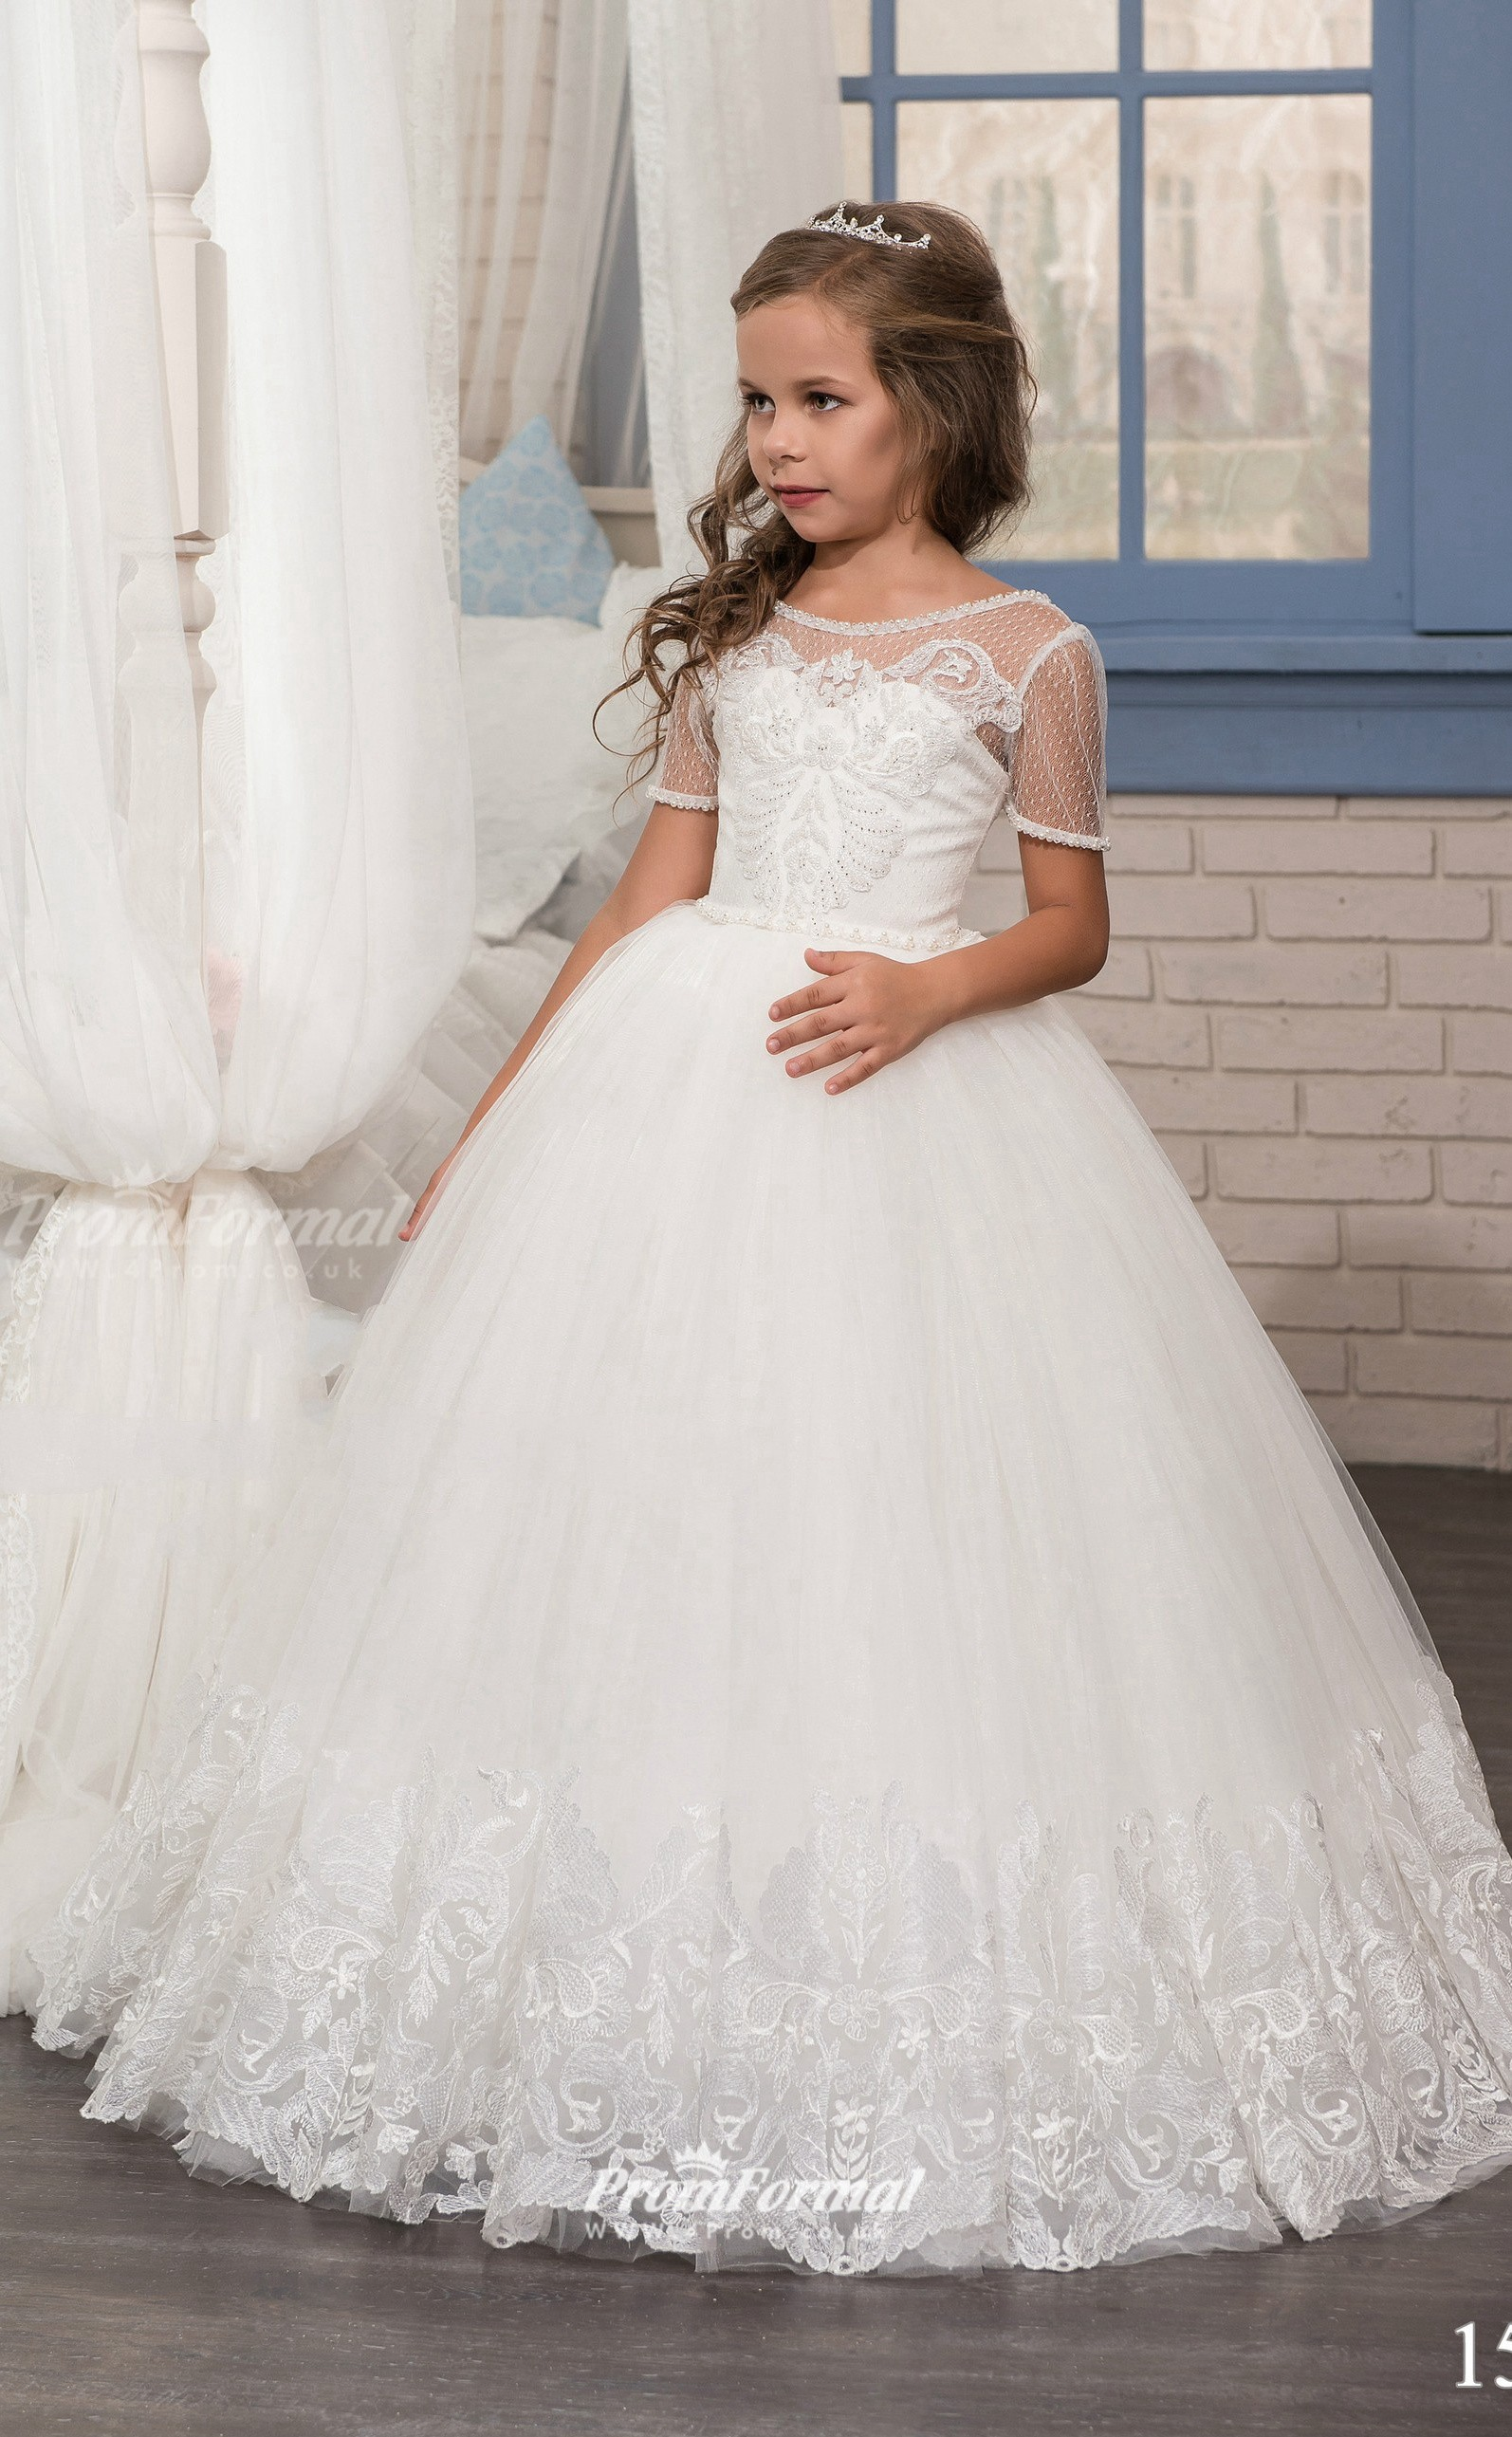 Tulle Lace Princess Illusion Short Sleeve Dresses For 13 Years Olds Chk157 4prom Co Uk